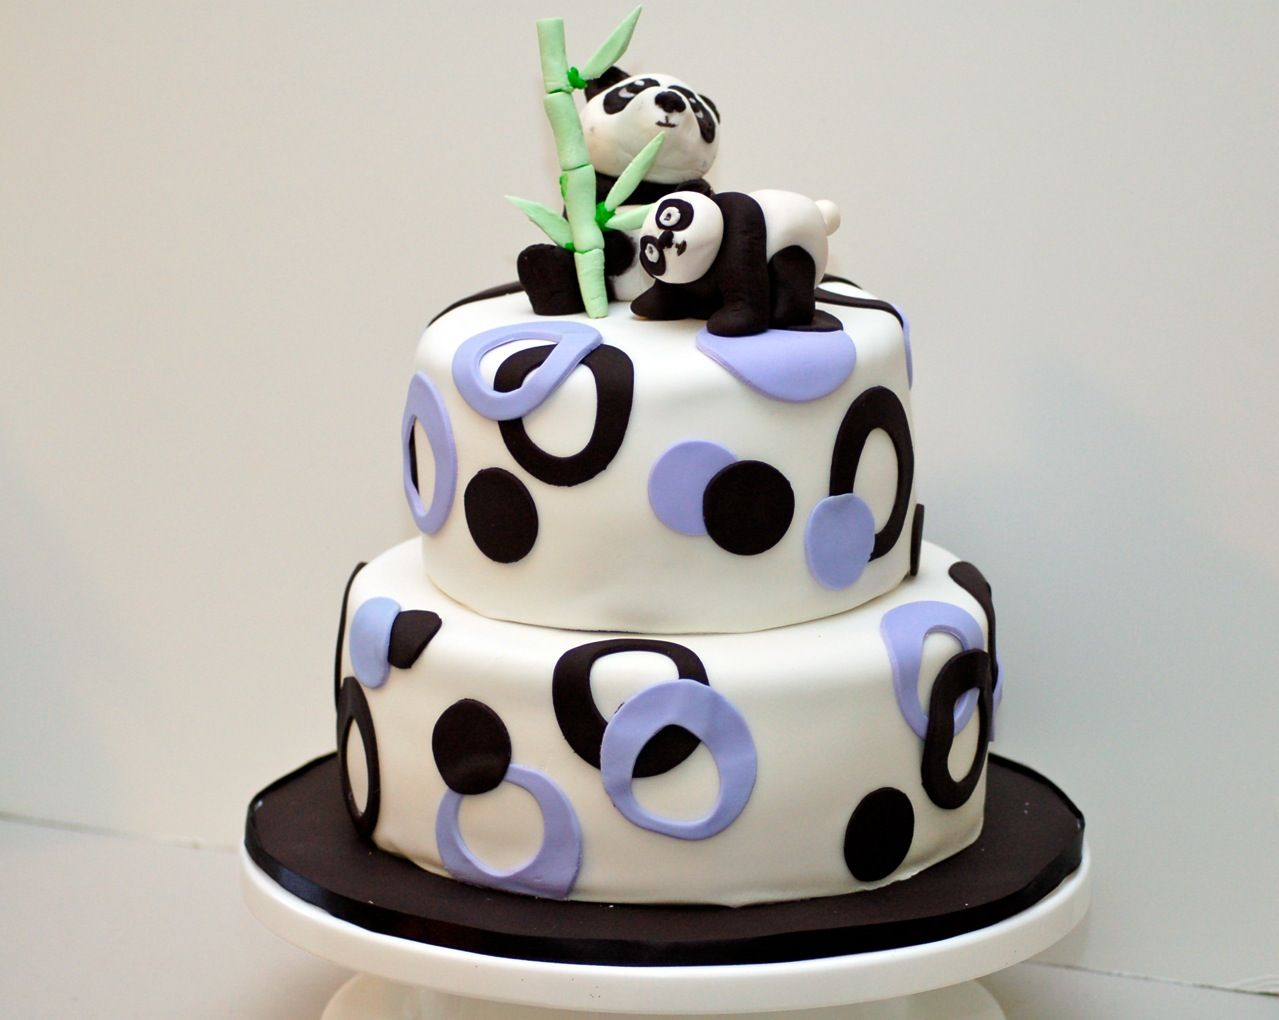 Cute Panda Birthday Cake Cake Designs Cute panda